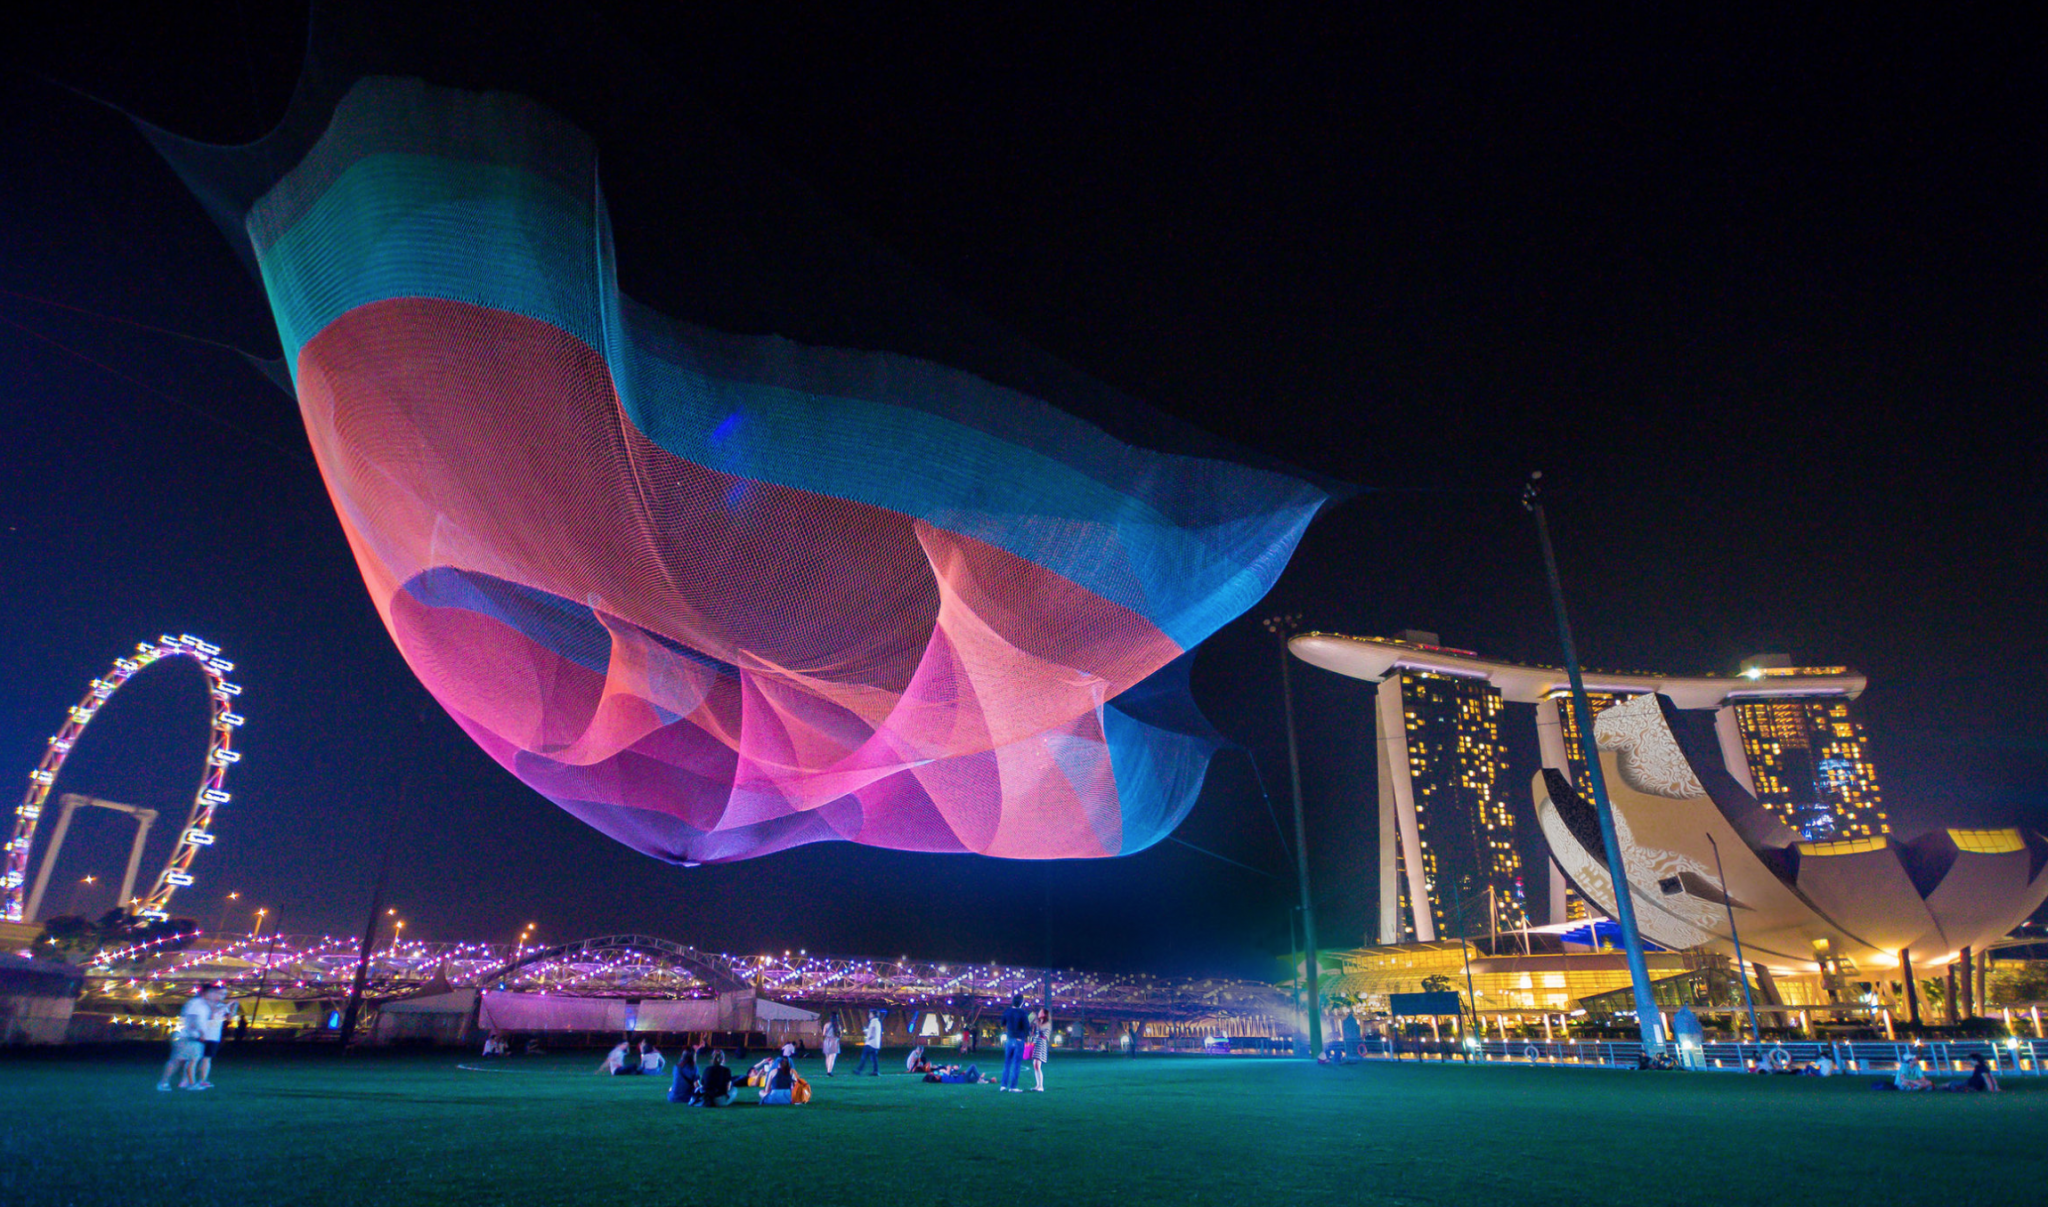 Photo credit: echelman.com